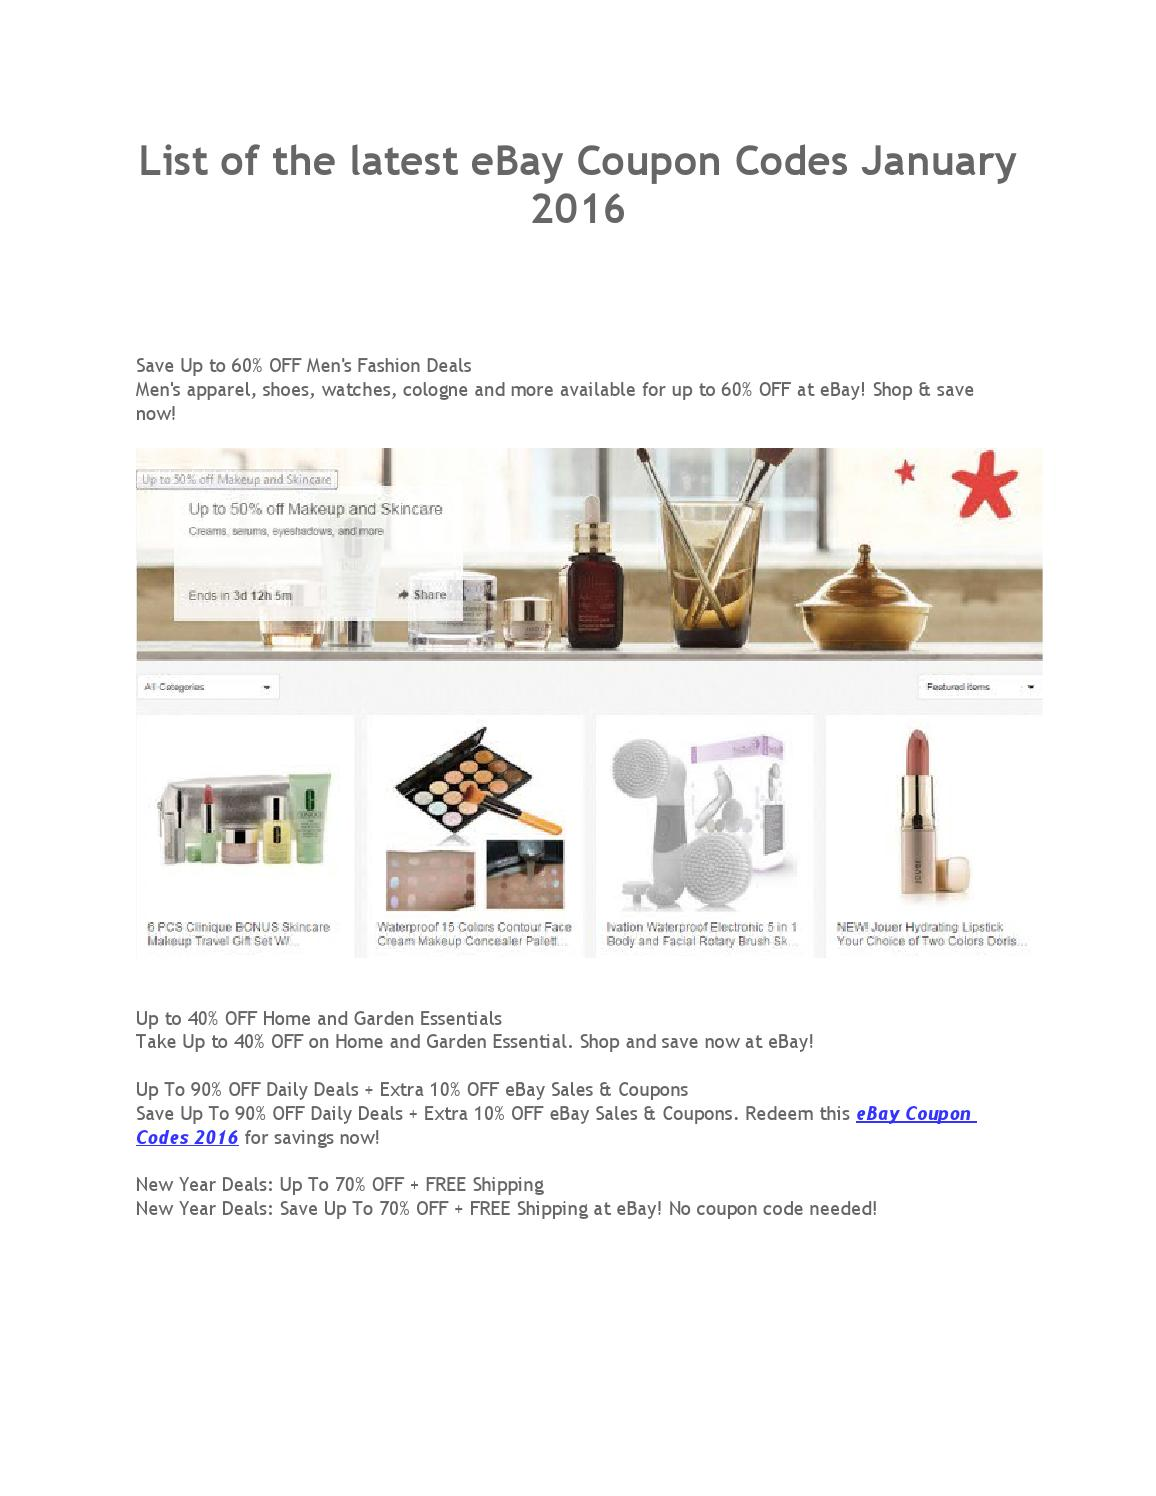 List Of The Latest Ebay Coupon Codes January 2016 By Emma Wat Son Issuu